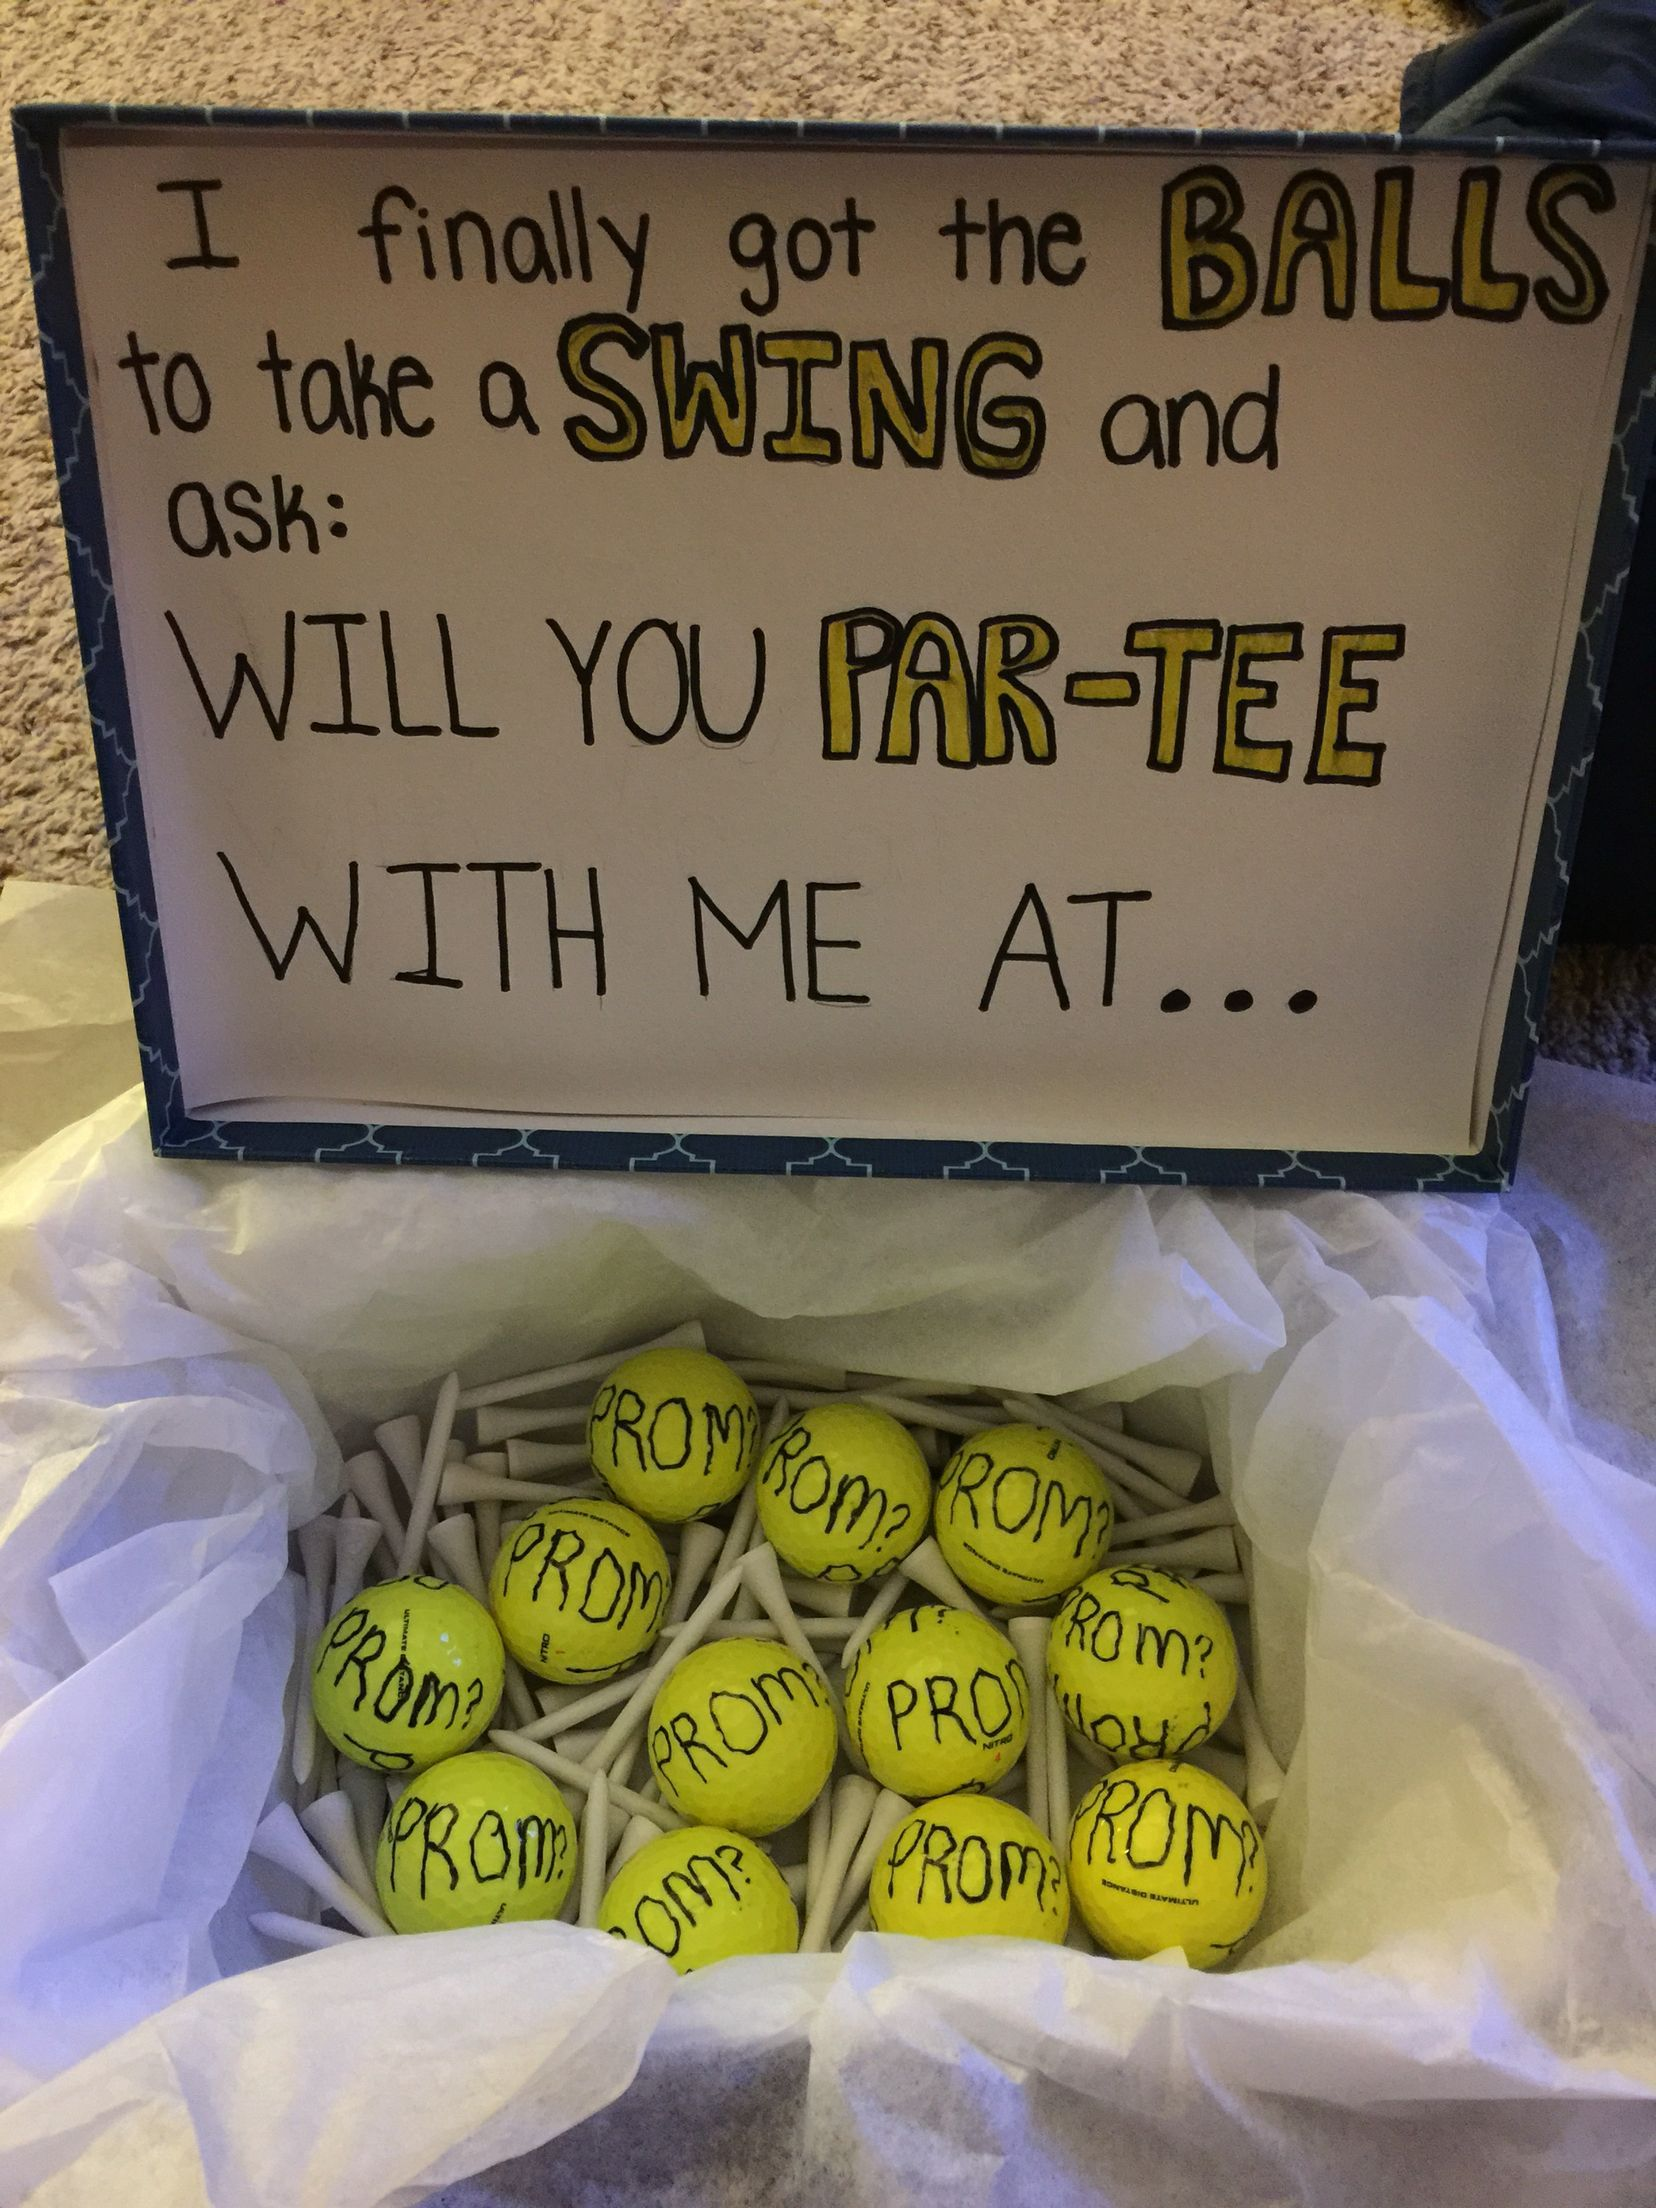 Promposal For Boyfriends Golf Prom Funny Ideas Promposalideas Homecoming Proposal Cute Prom Proposals Promposal